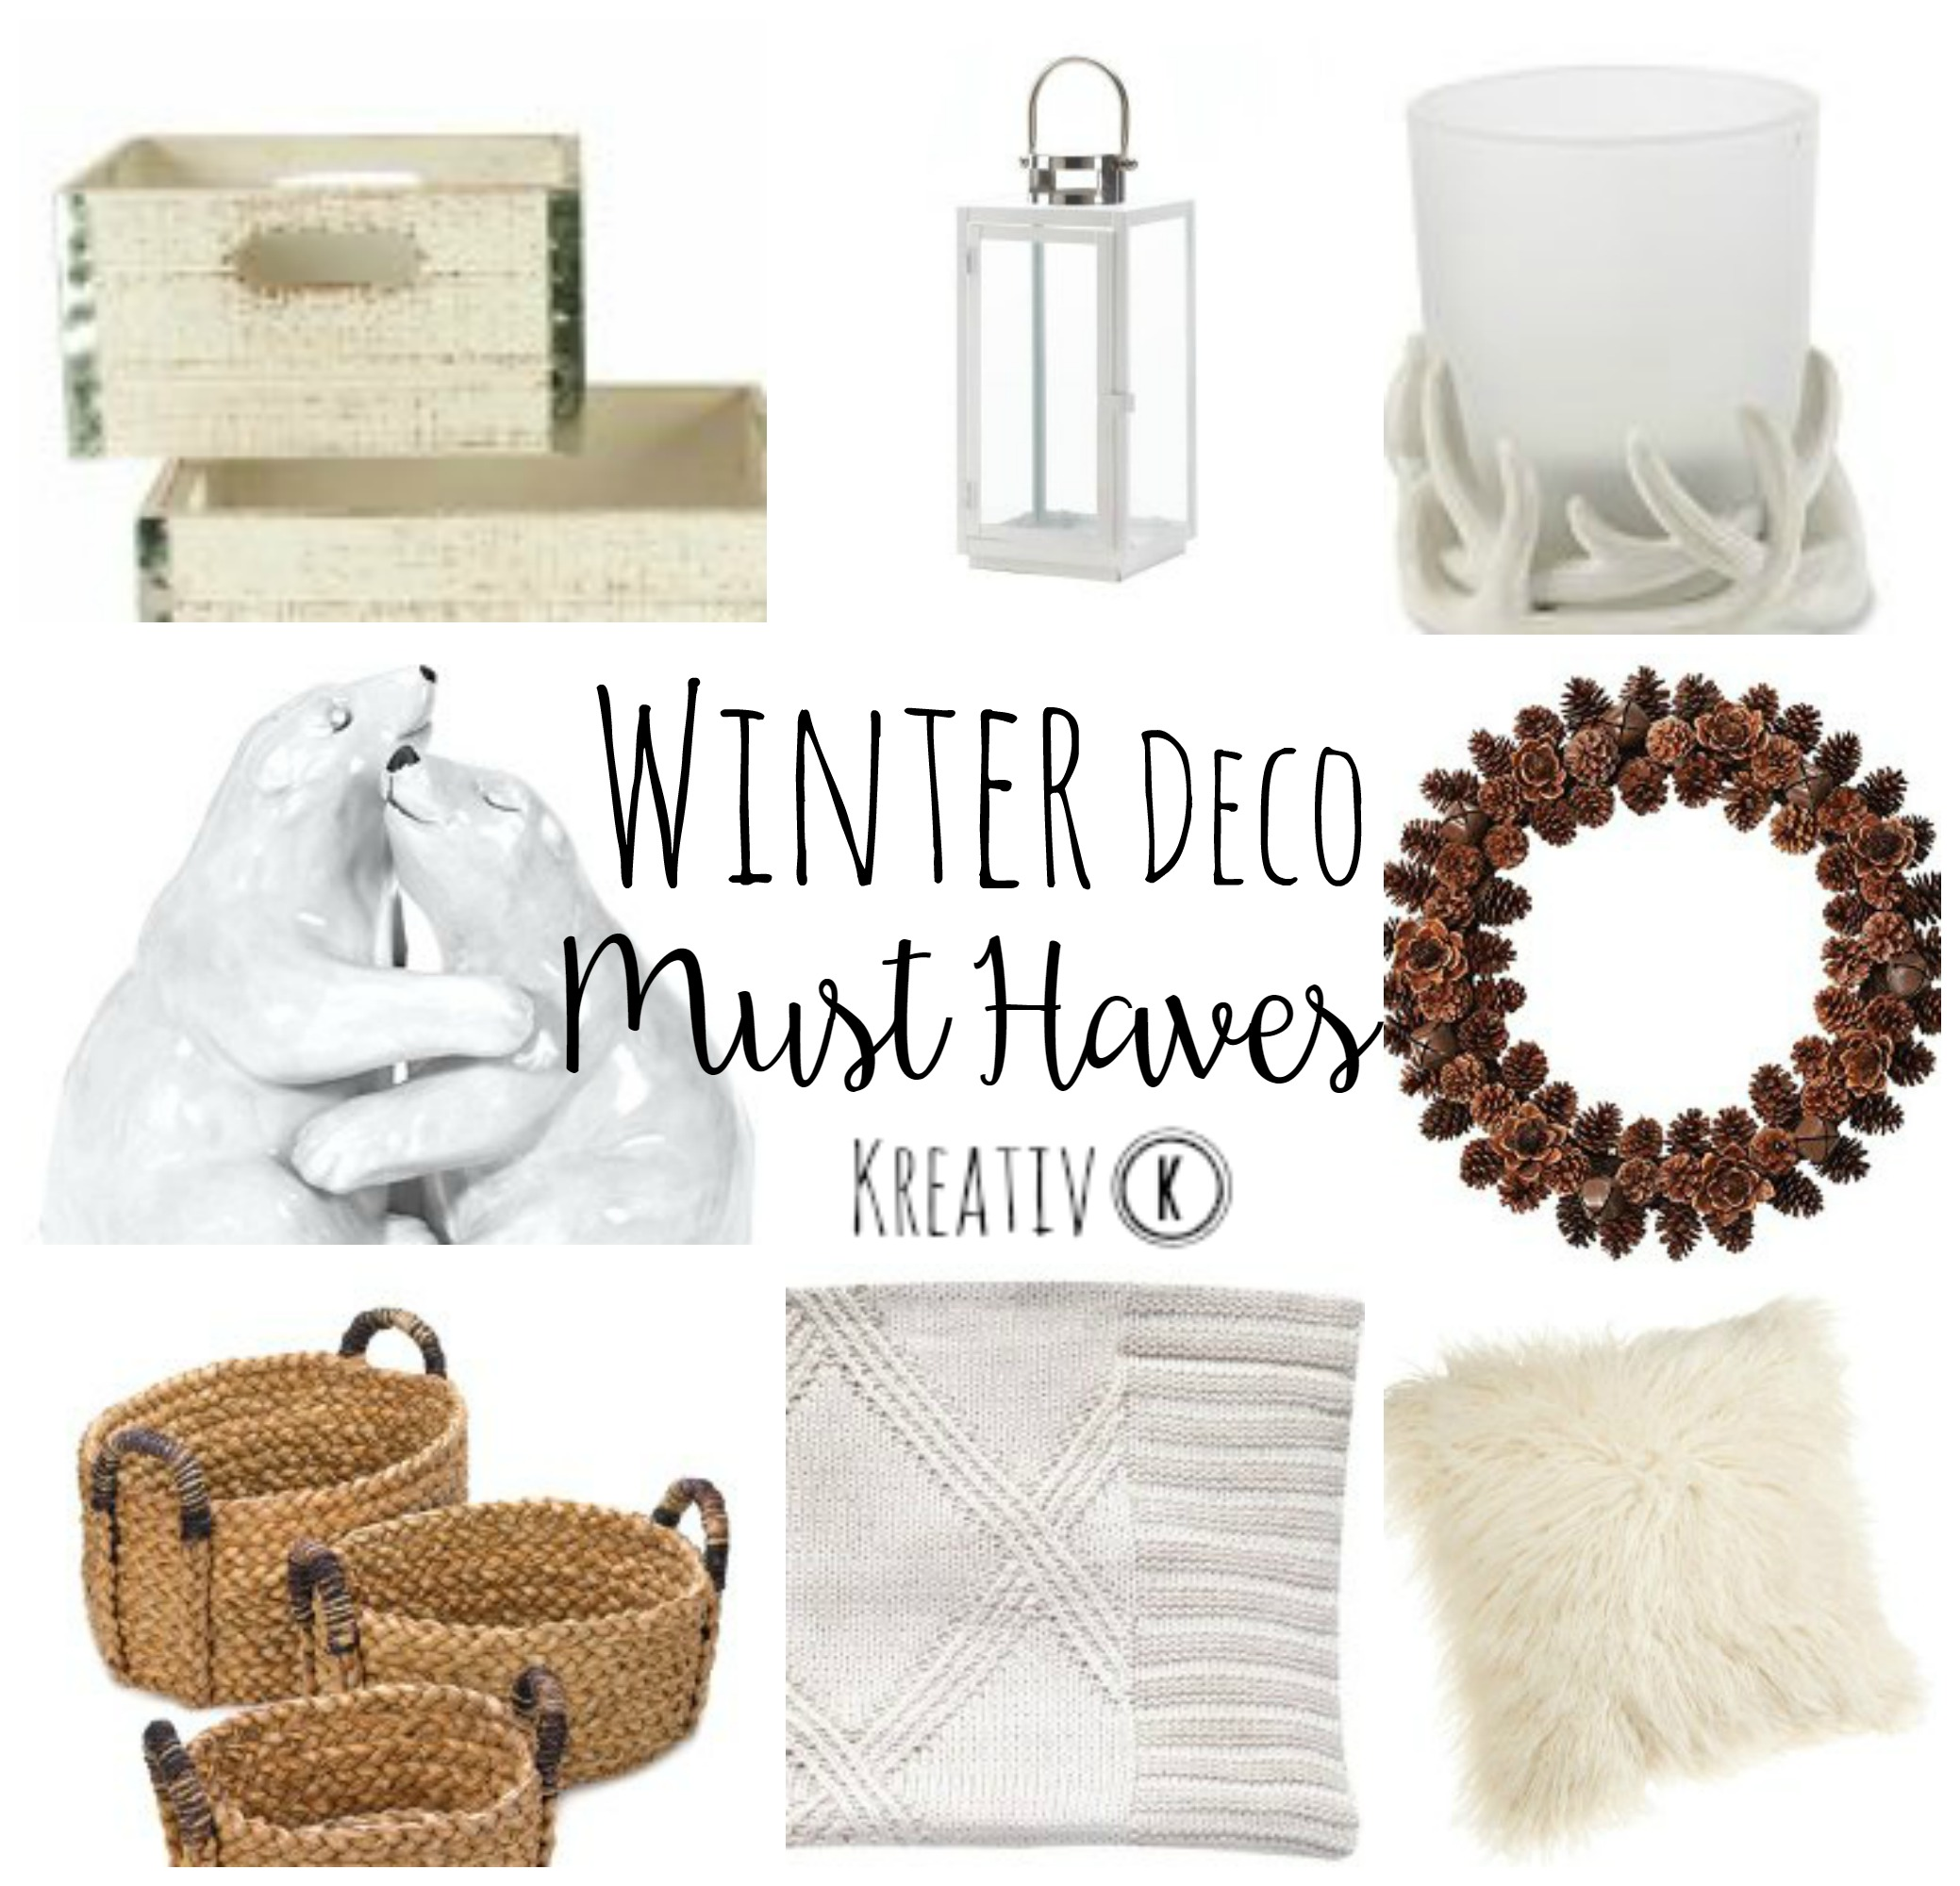 Winter-deco-must-haves-2